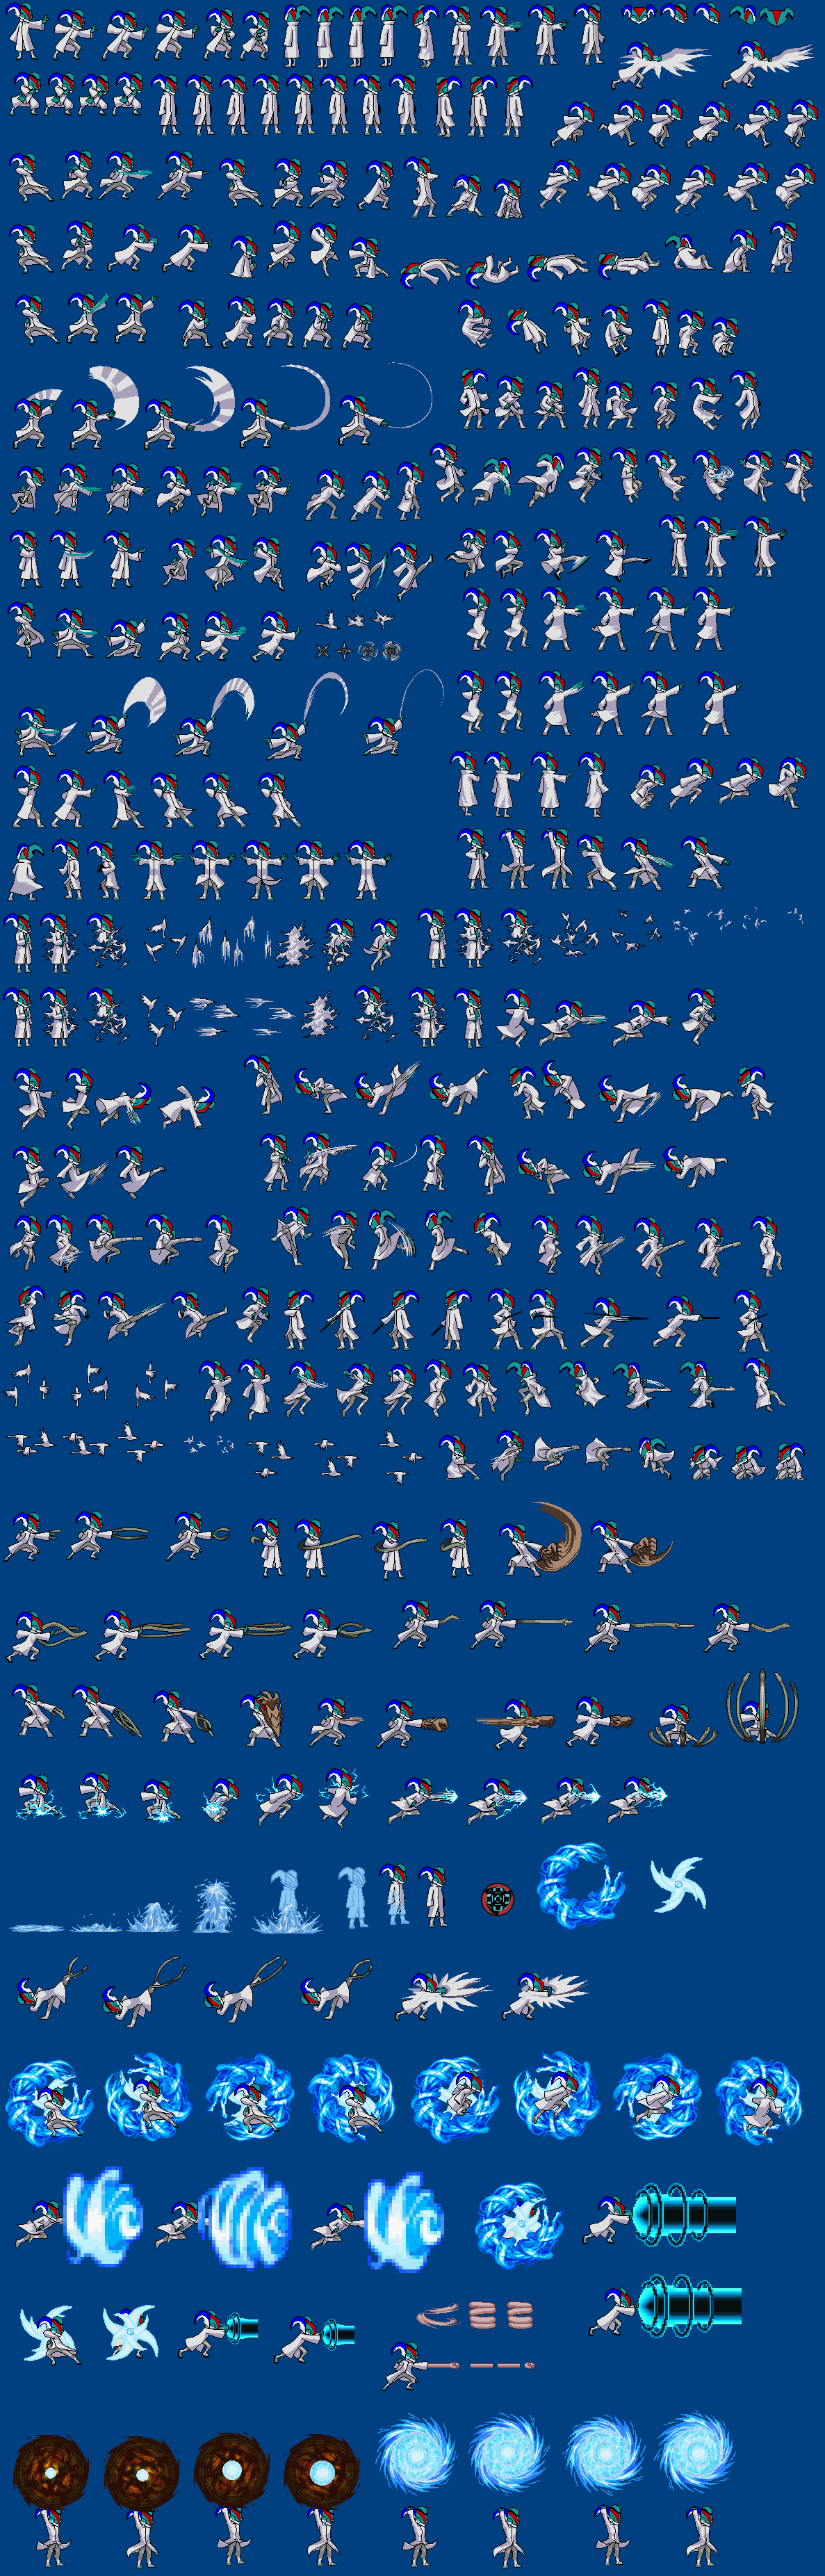 Yongso the greninja sprite sheet by funnytime77 by kamikazethc on